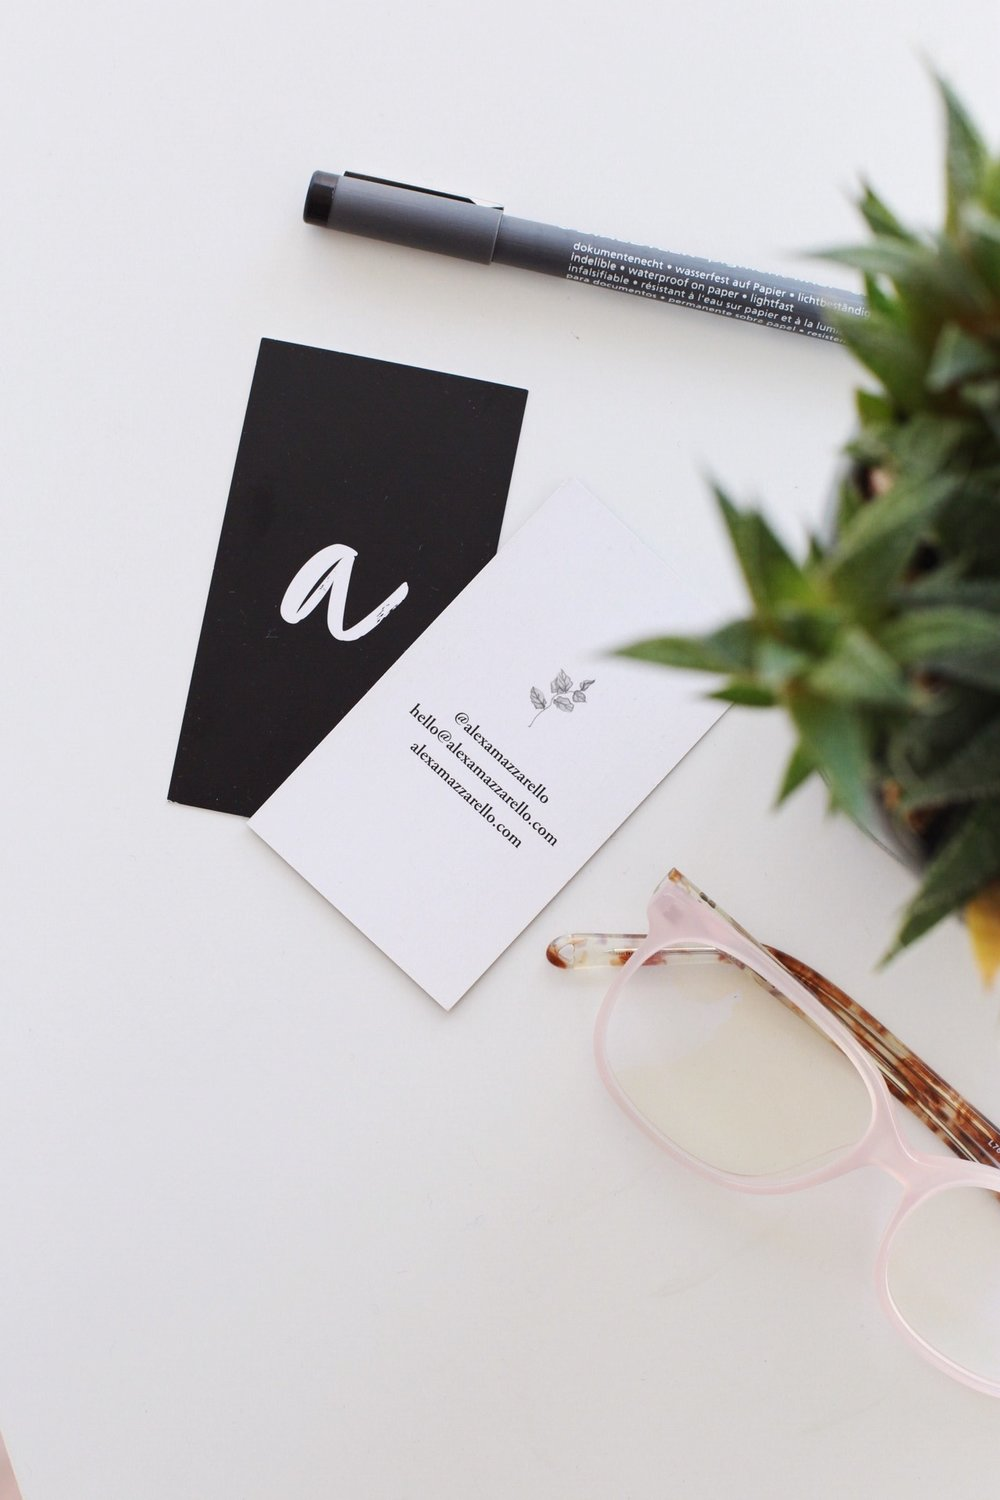 Alexa Mazzarello's Business Cards shown on a plain background with a green leaf, pink glasses and a pen.